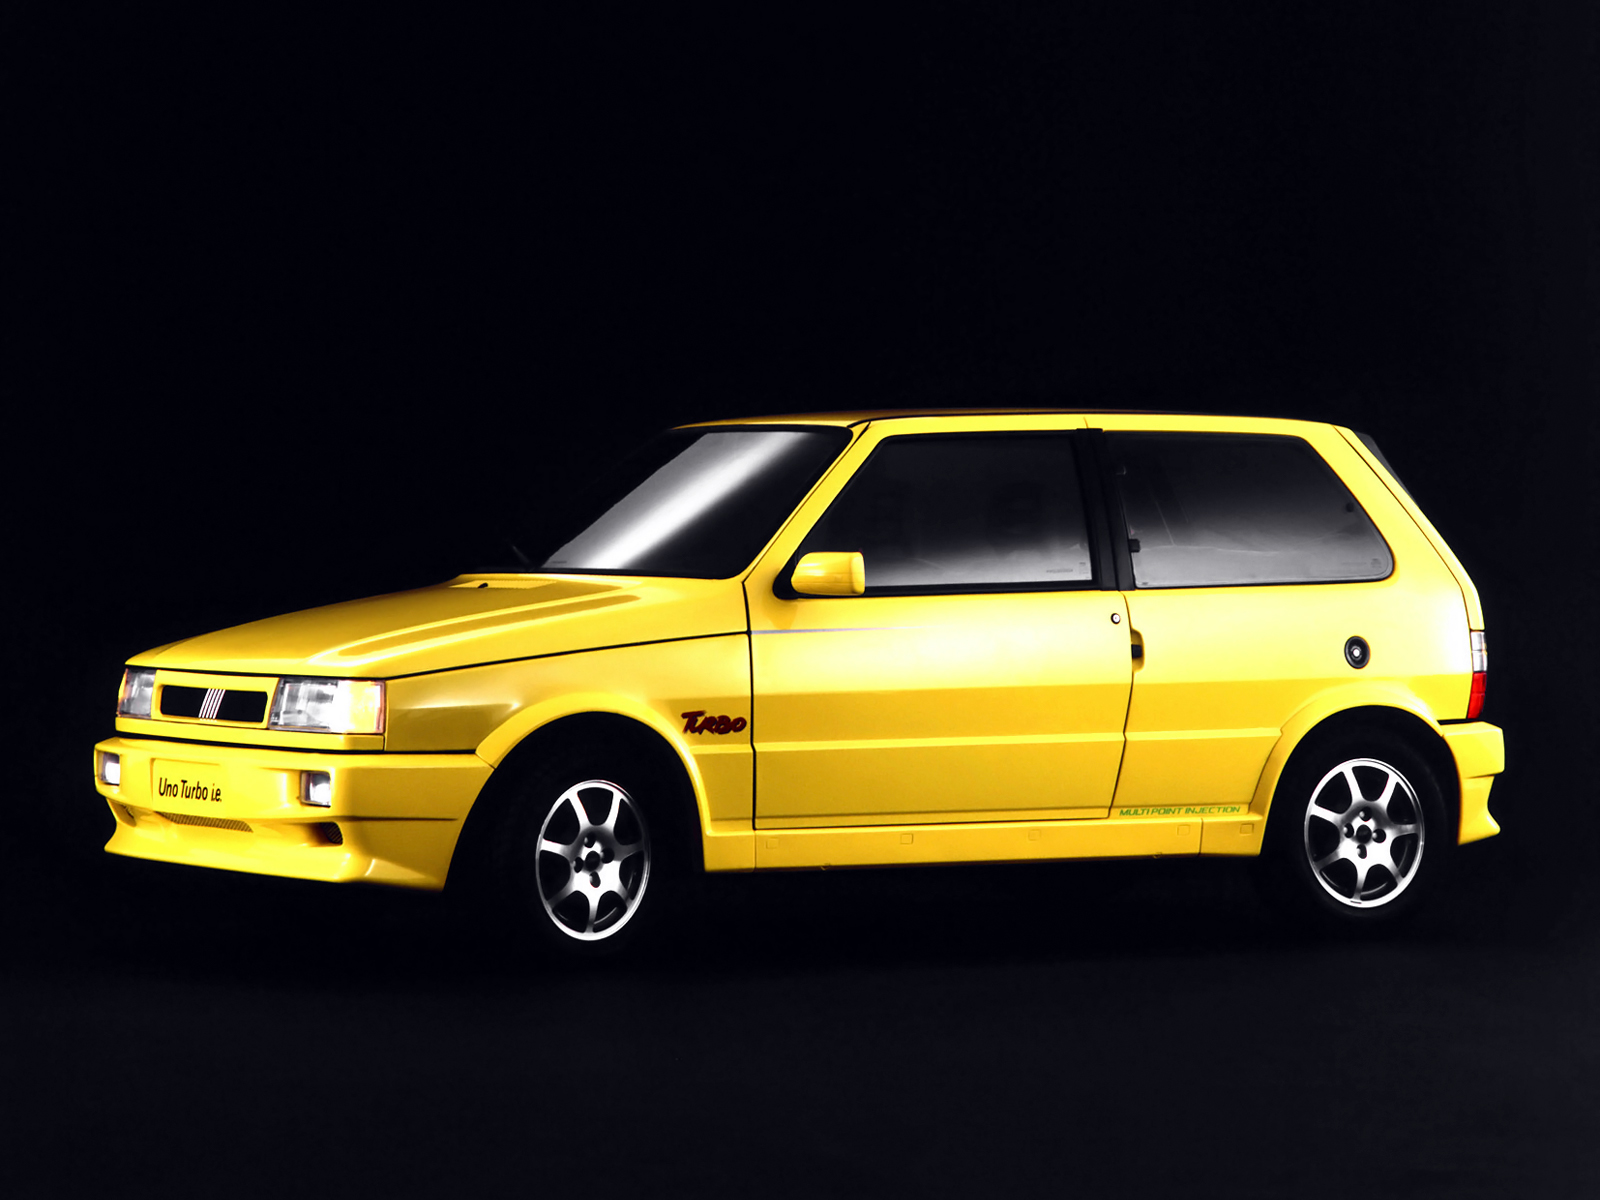 fiat uno turbo ie brazil 4 ran when parked. Black Bedroom Furniture Sets. Home Design Ideas